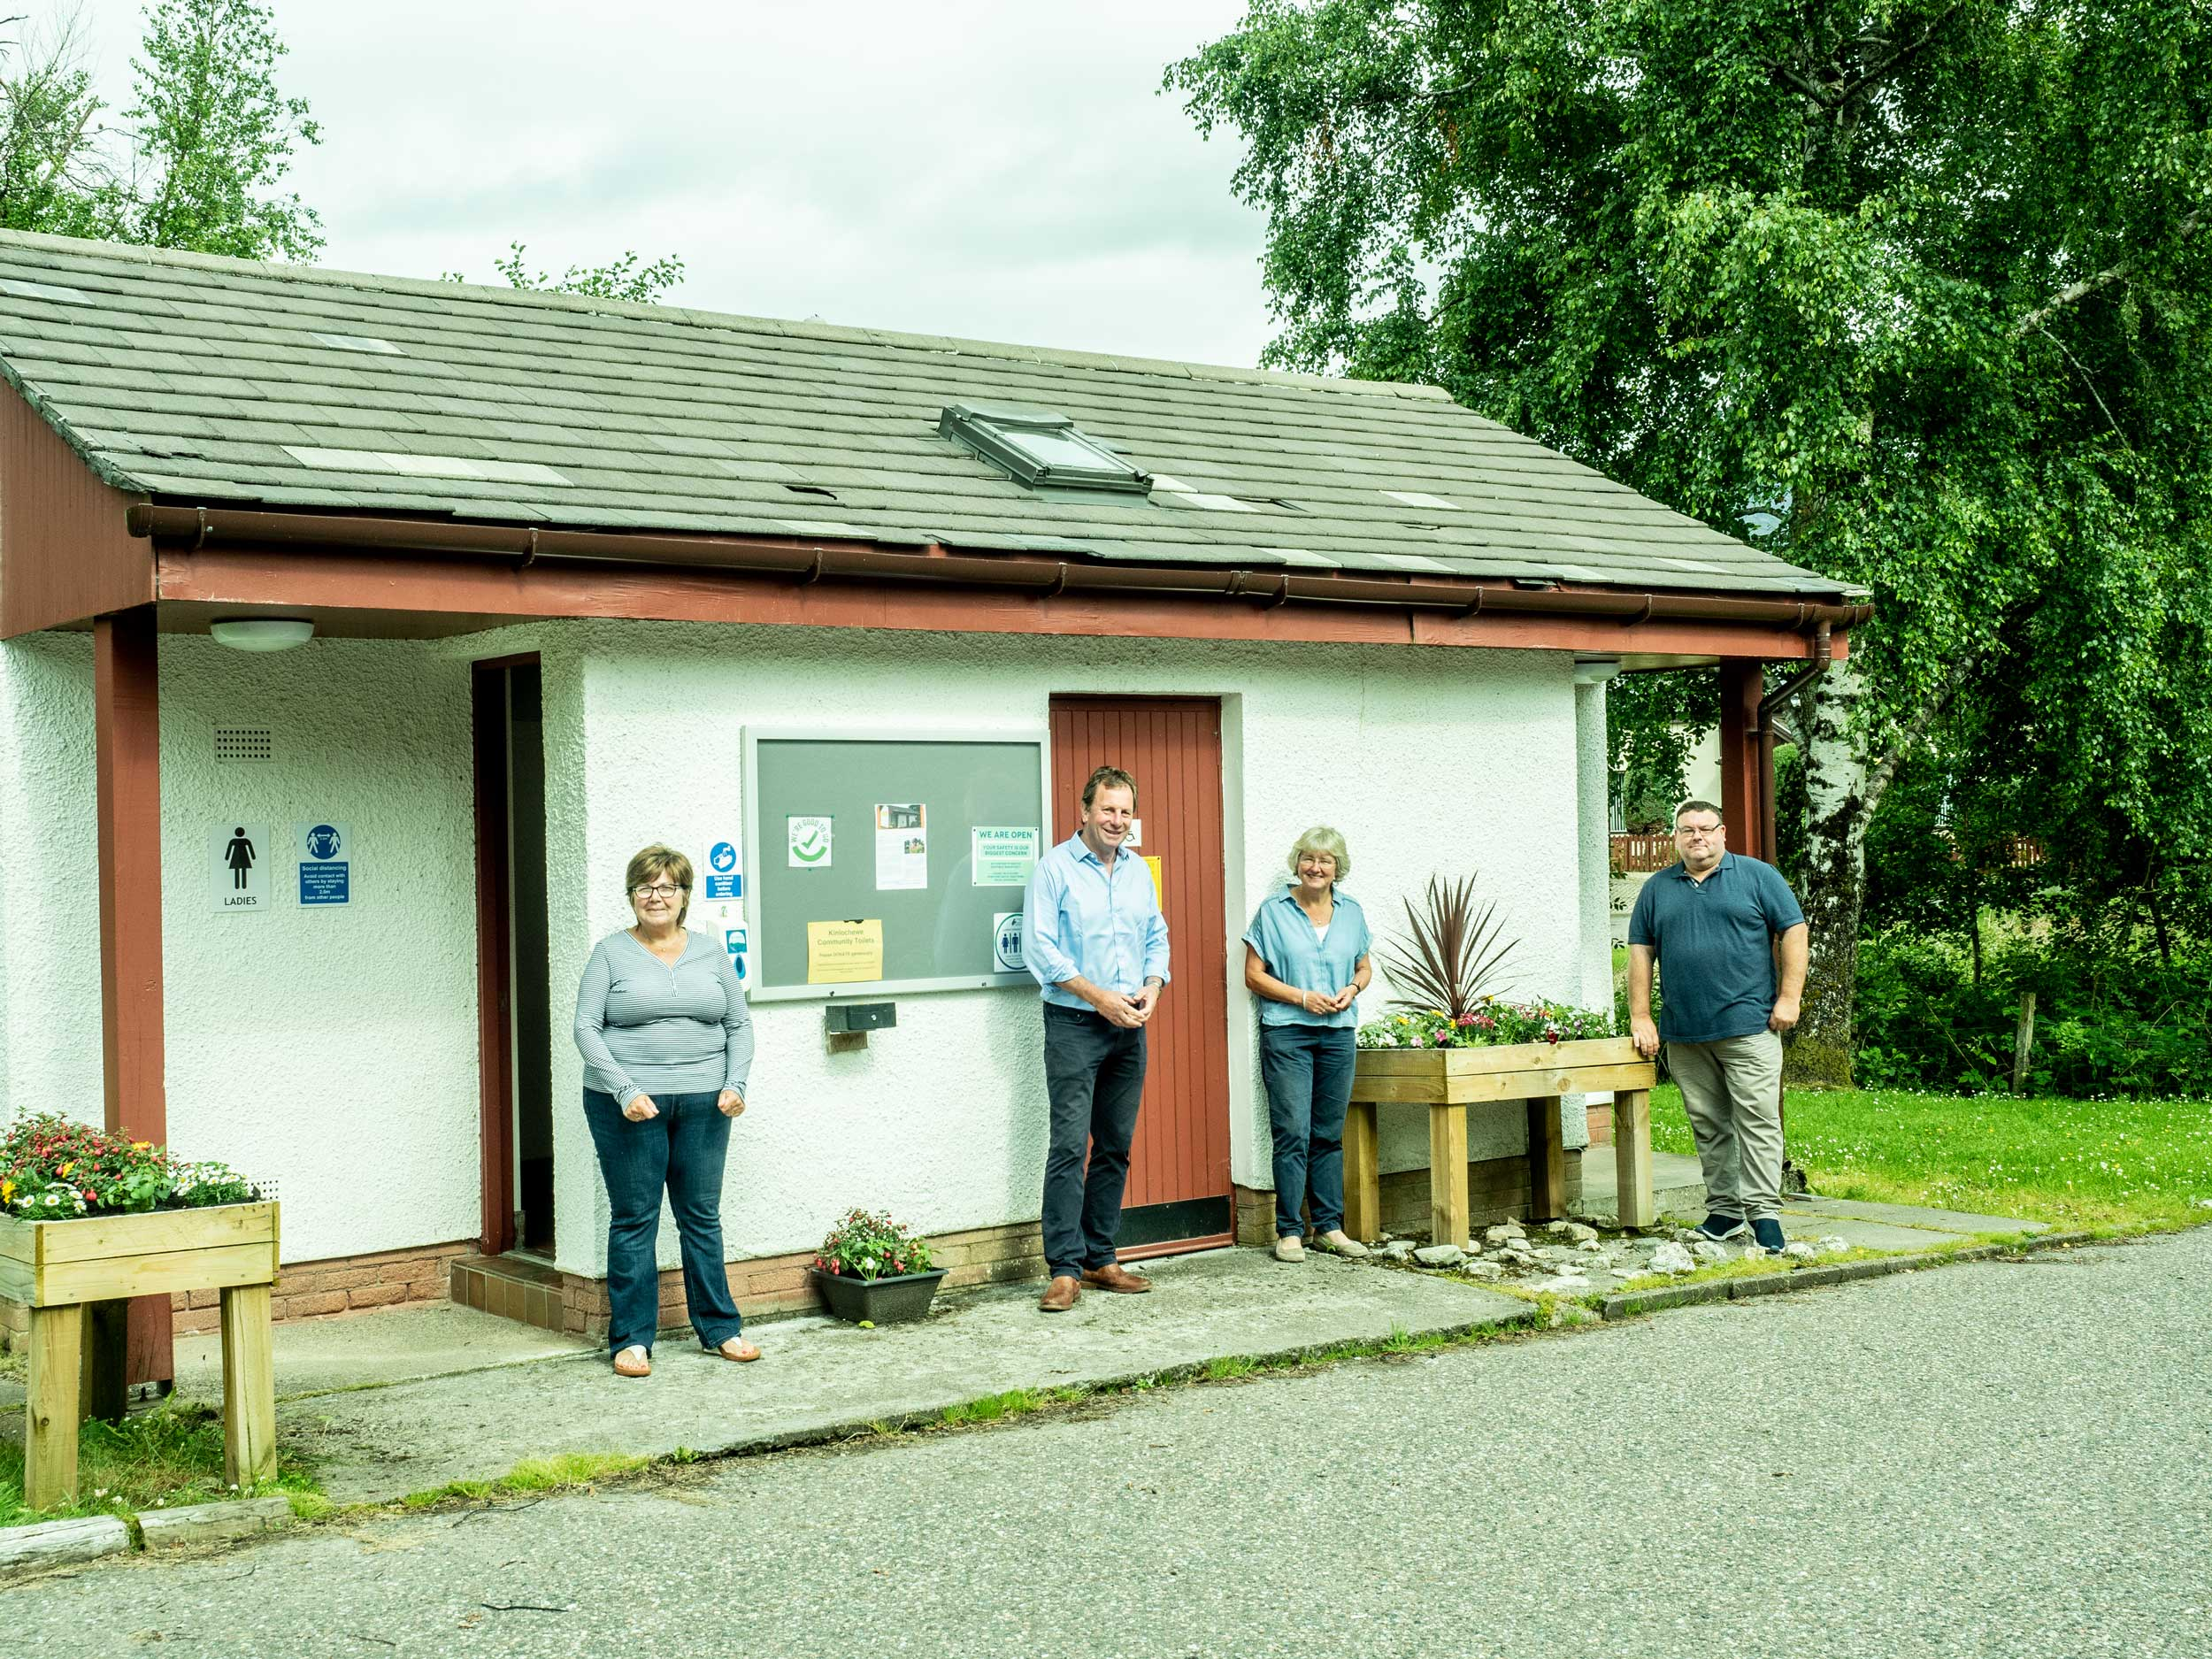 Kinlochewe community toilets, L-R Karen Twist, NHI David Whiteford, Mary Peart, Andrew Peacock